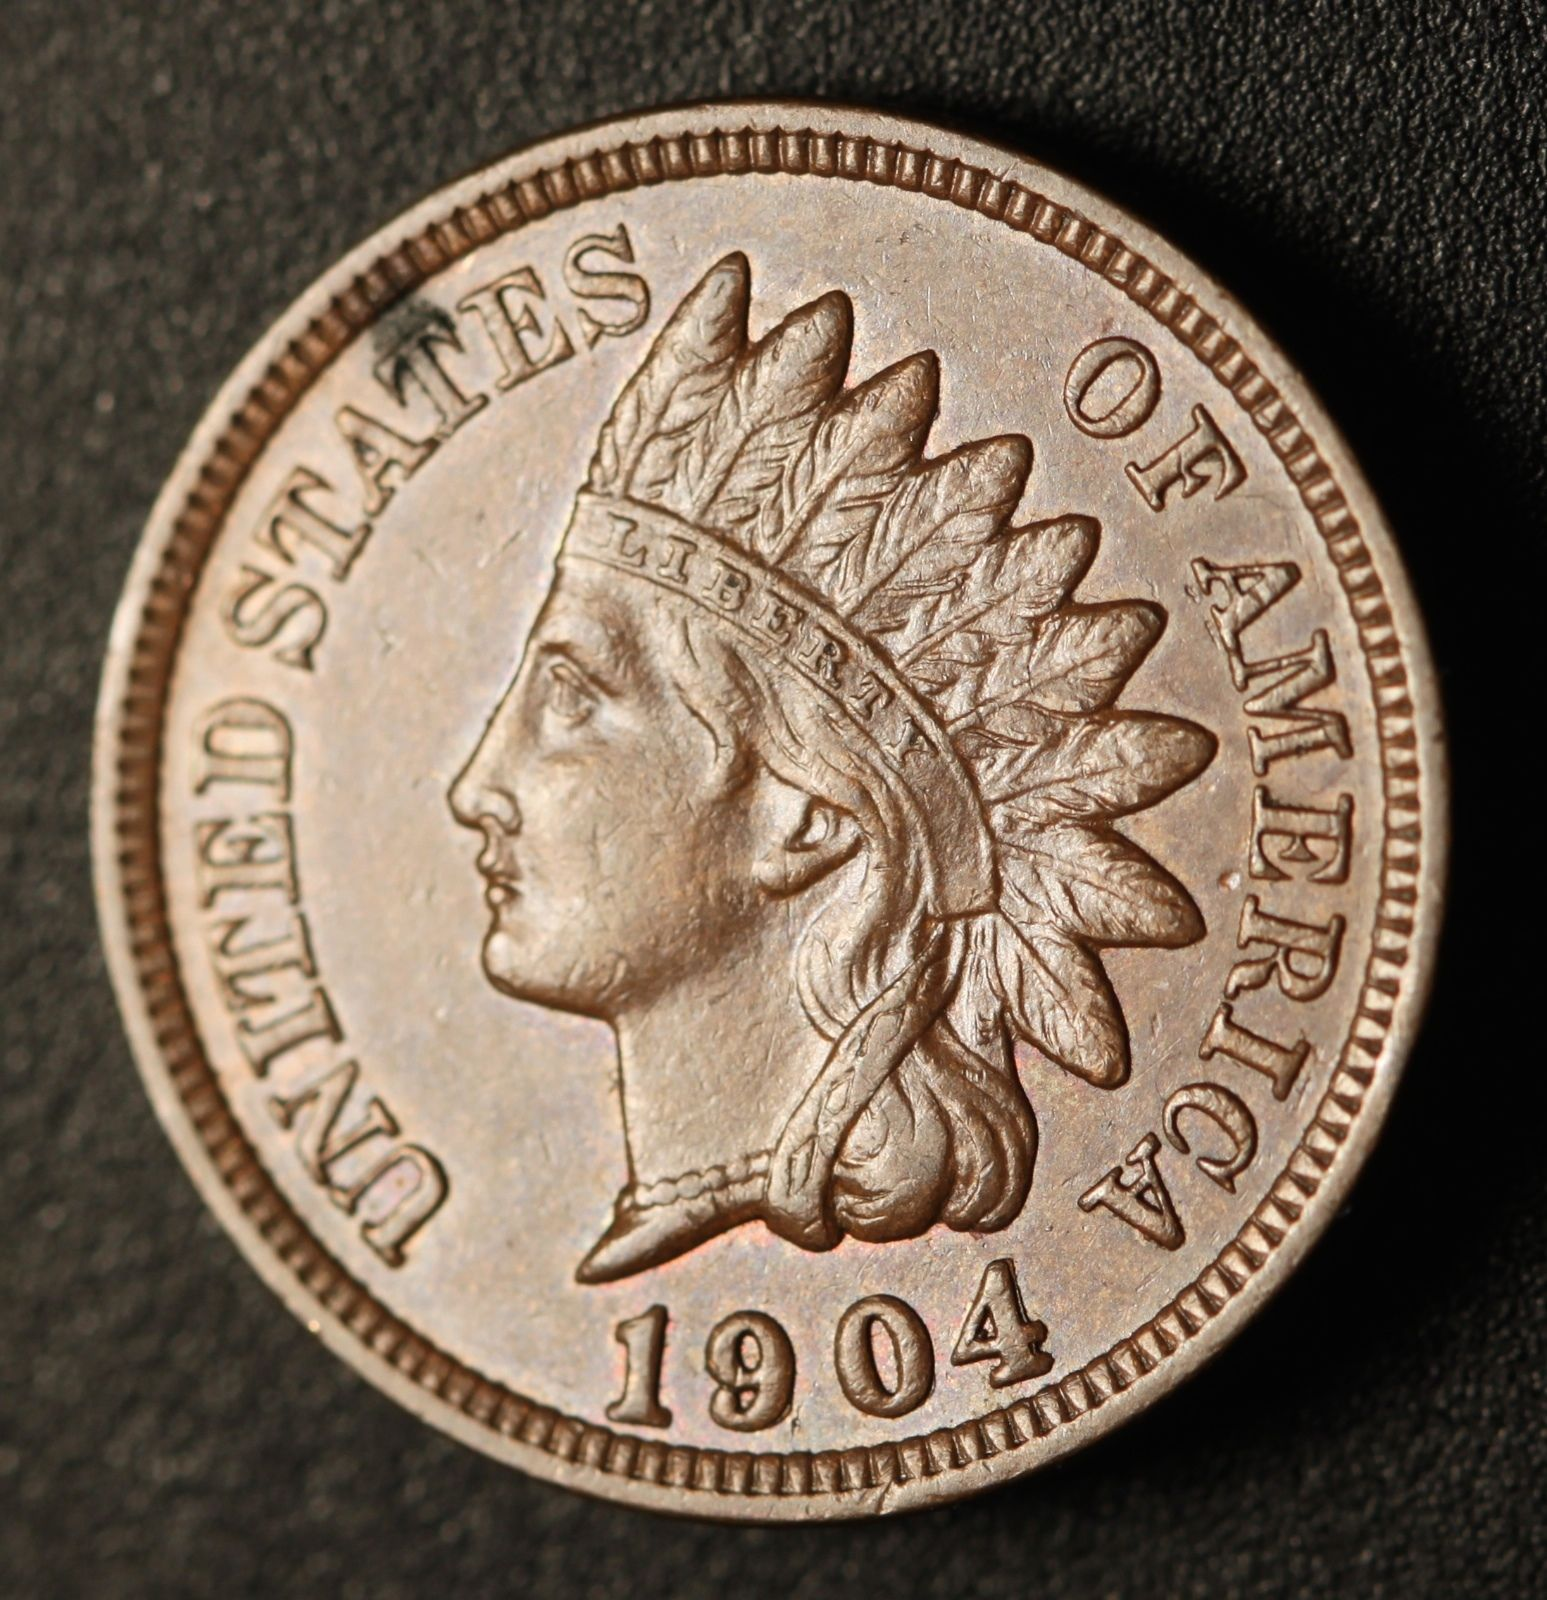 1904 RPD-003 Indian Head Penny - Photo by Ed Nathanson